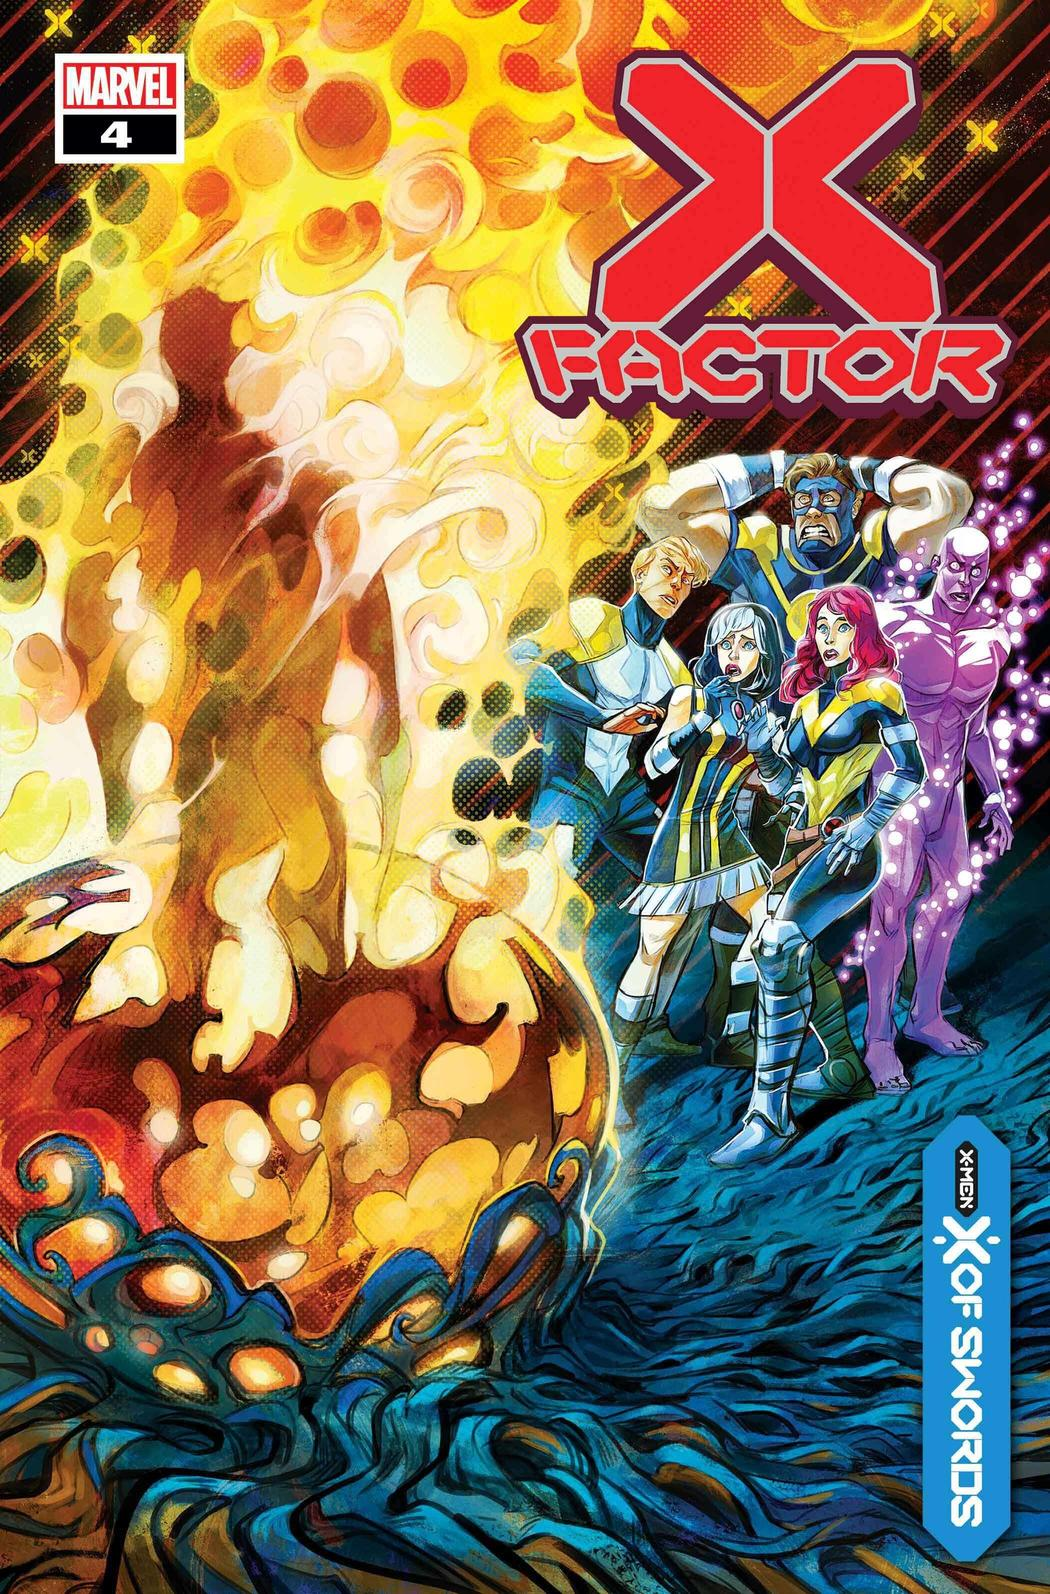 X-FACTOR #4 WRITTEN BY LEAH WILLIAMS, ART BY CARLOS GOMEZ, COVER BY IVAN SHAVRIN